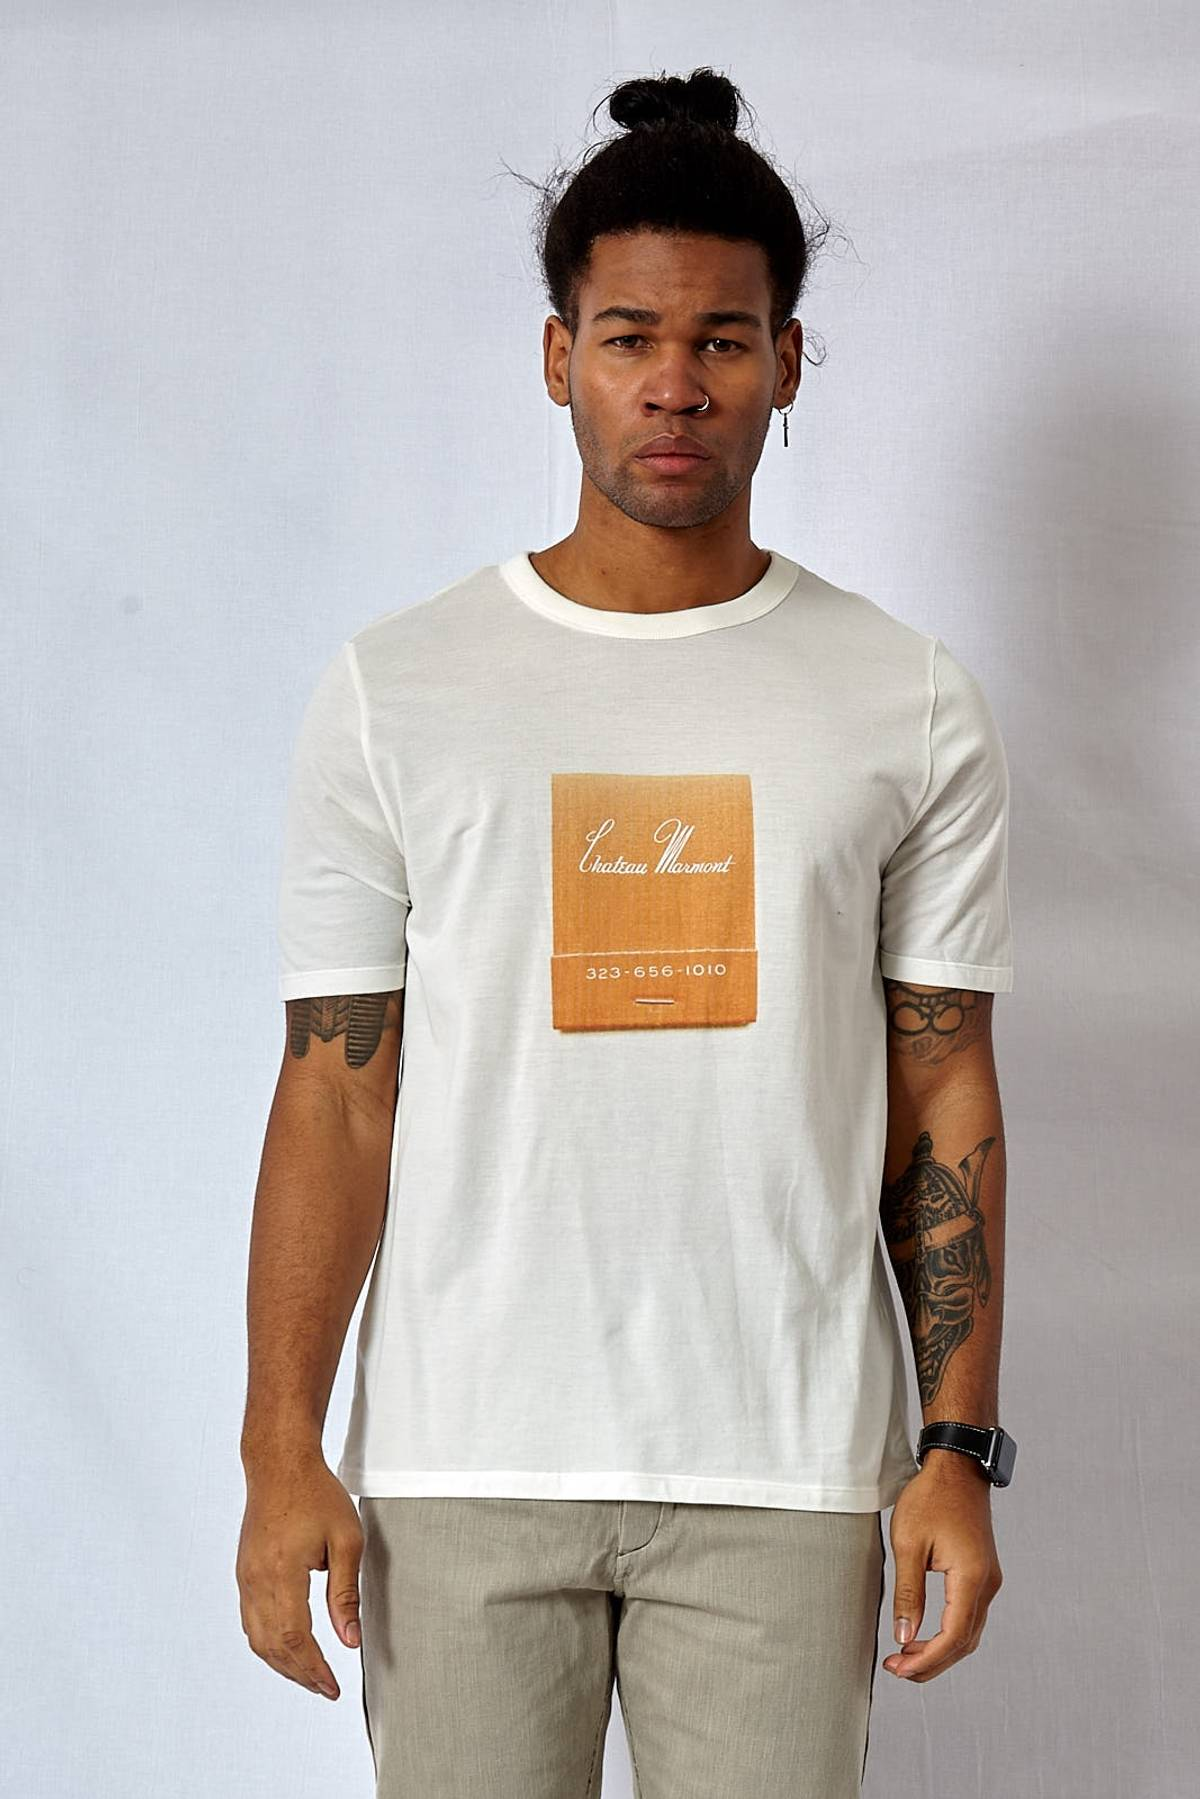 63245c59bc3 Band Of Outsiders BRAND NEW! CHATEAU MARMONT TEE Size m - Short Sleeve T- Shirts for Sale - Grailed